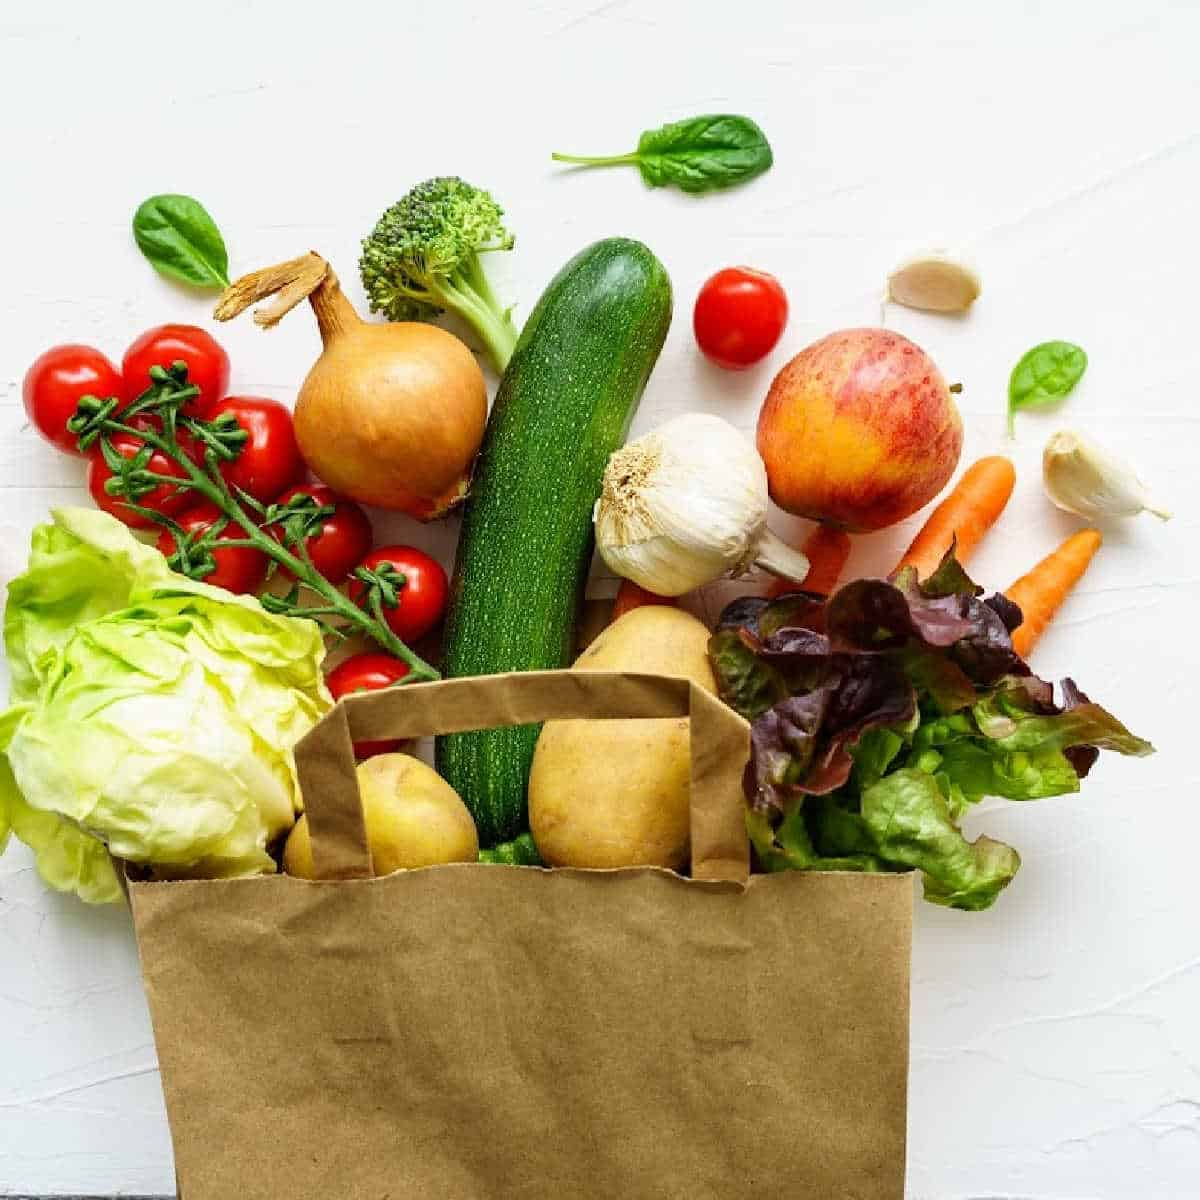 paper grocery bag filled with fruits and vegetables.